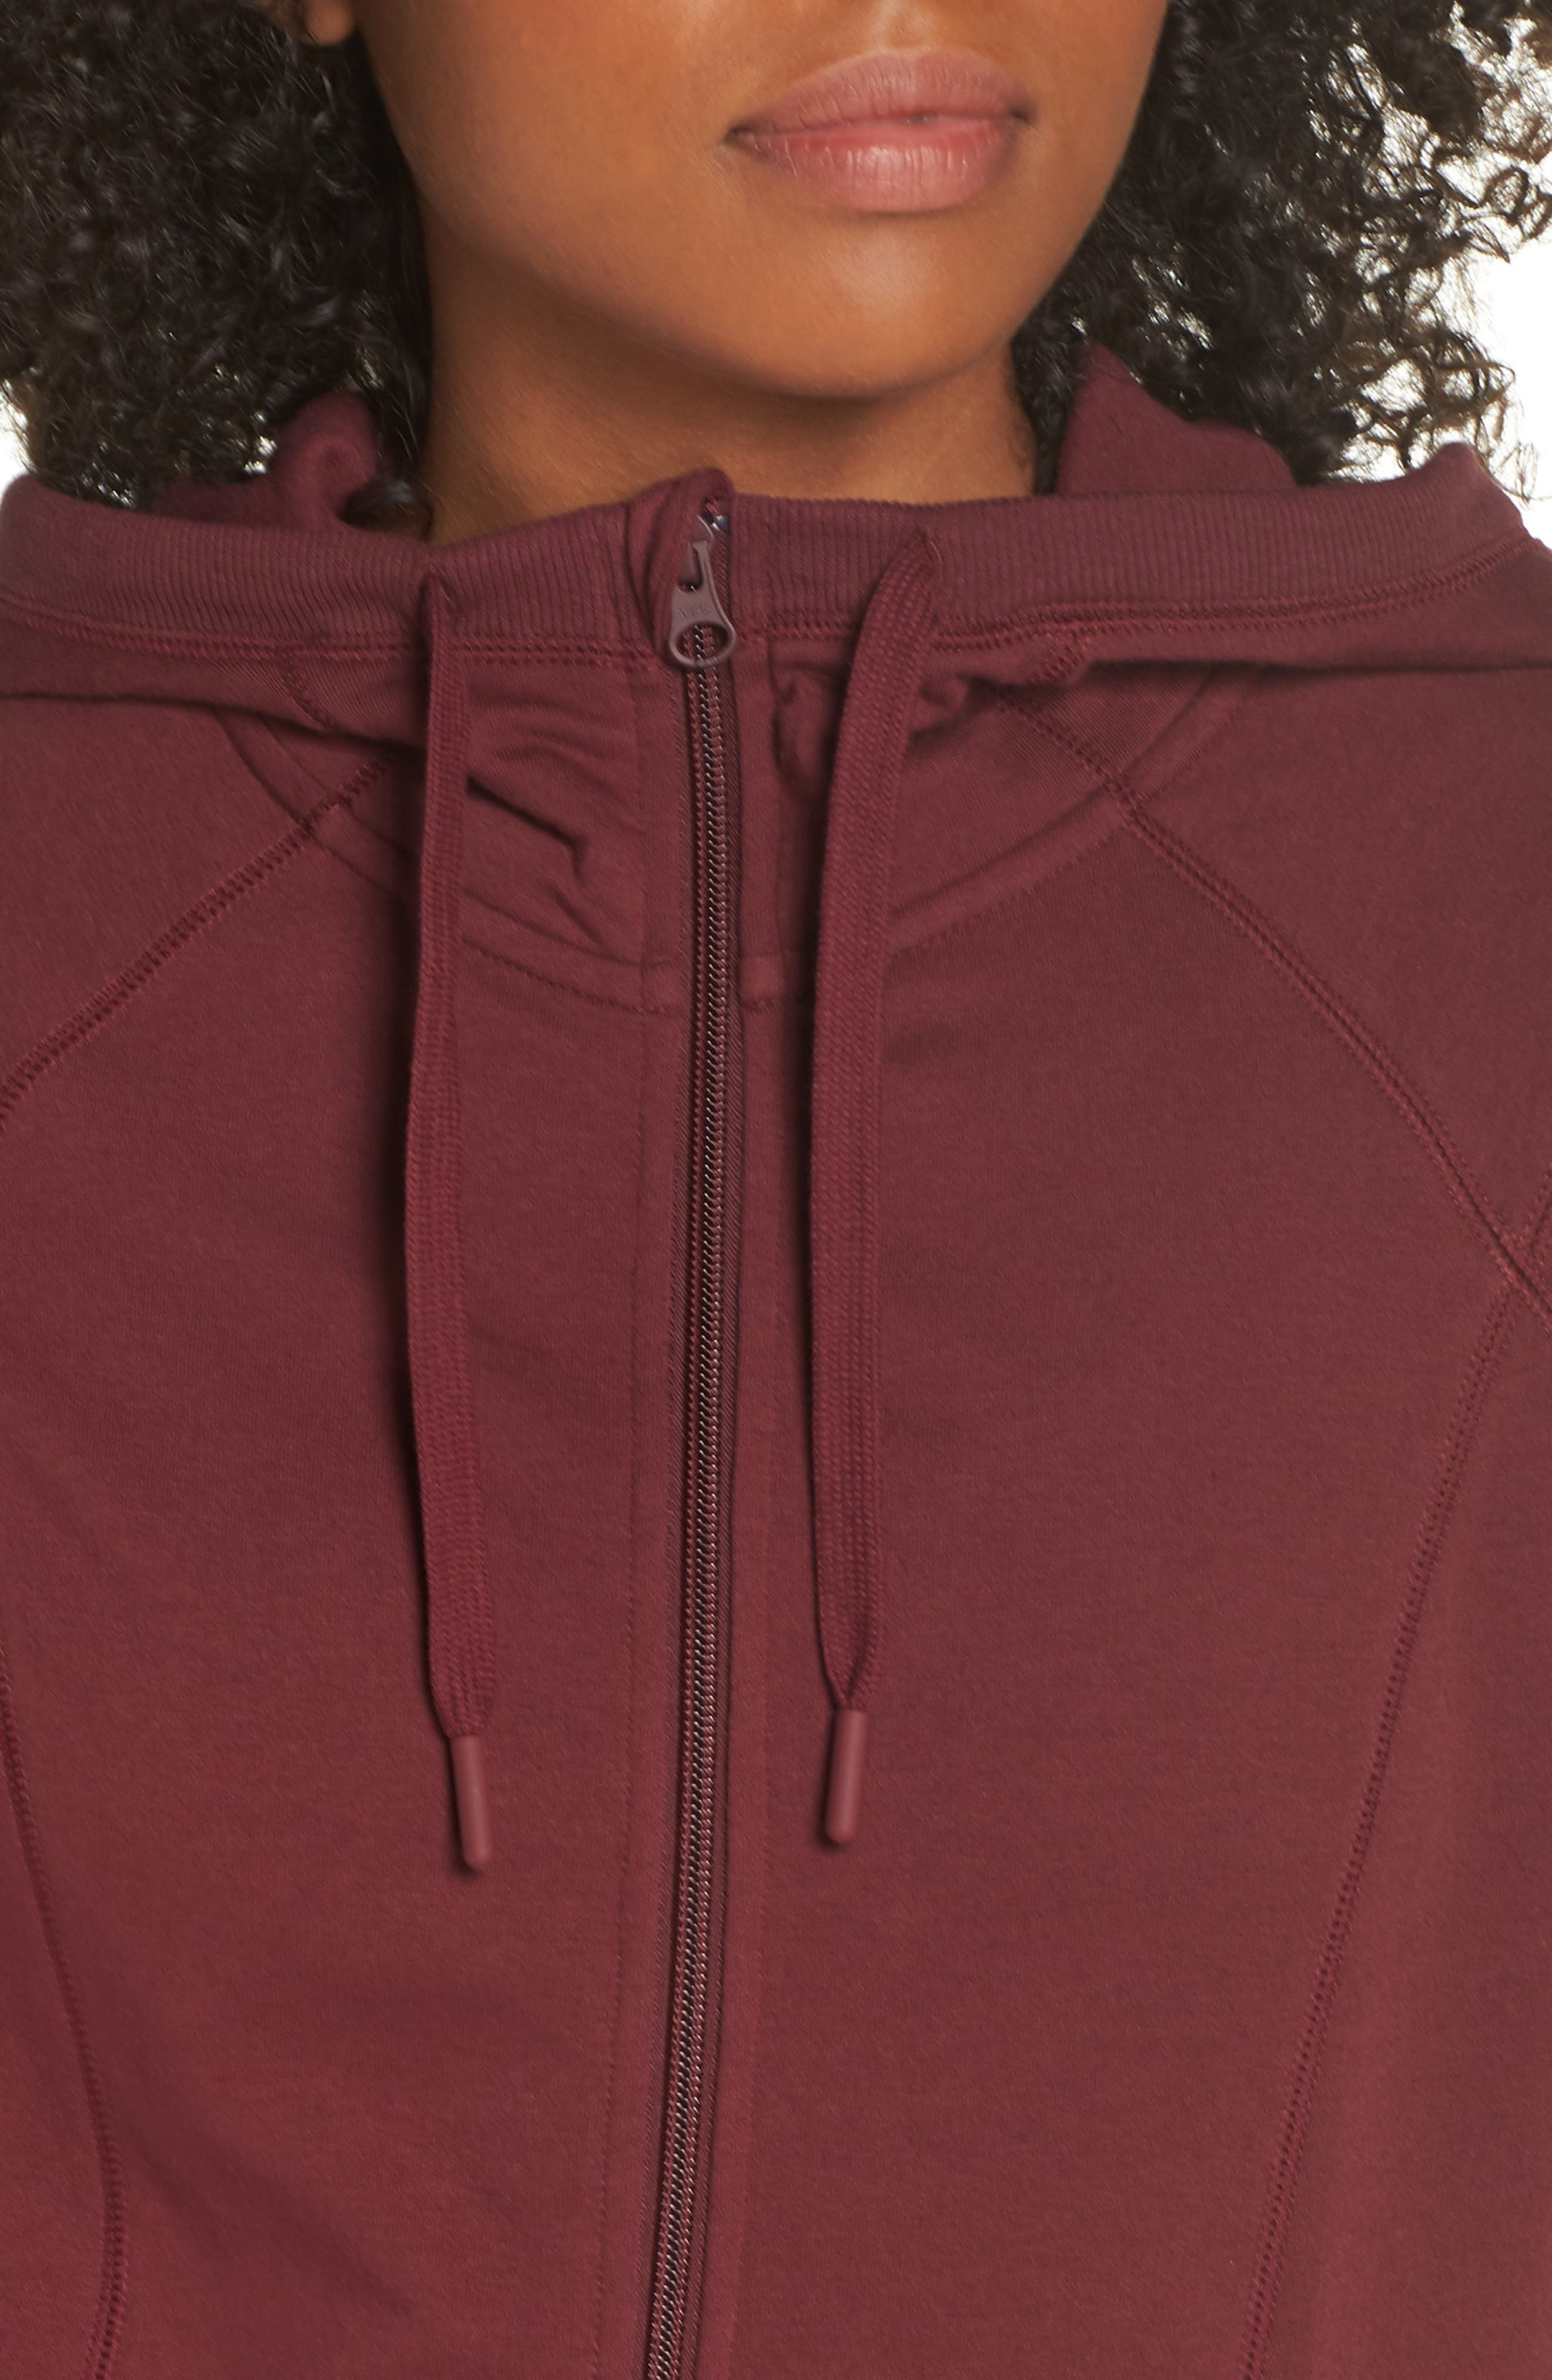 Outta Town Zip Hoodie,                             Alternate thumbnail 4, color,                             RED TANNIN